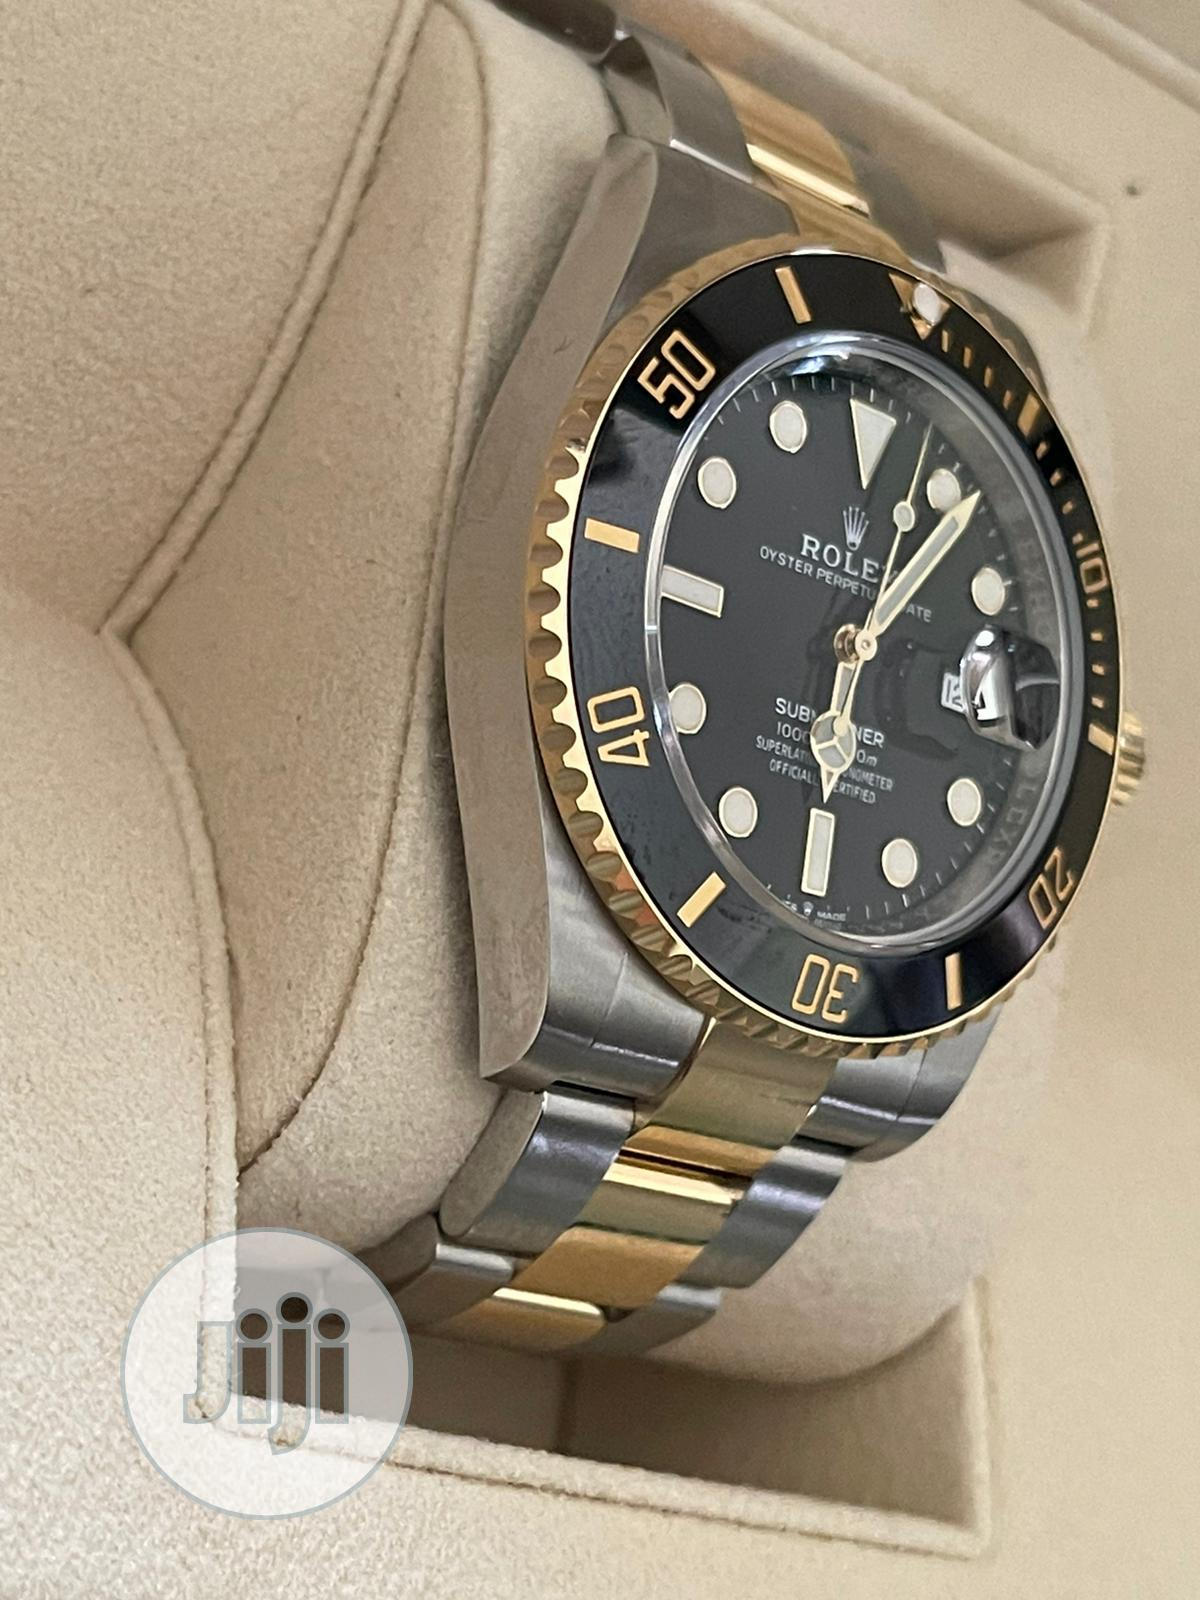 2020 Rolex Submariner 41mm | Watches for sale in Wuse, Abuja (FCT) State, Nigeria